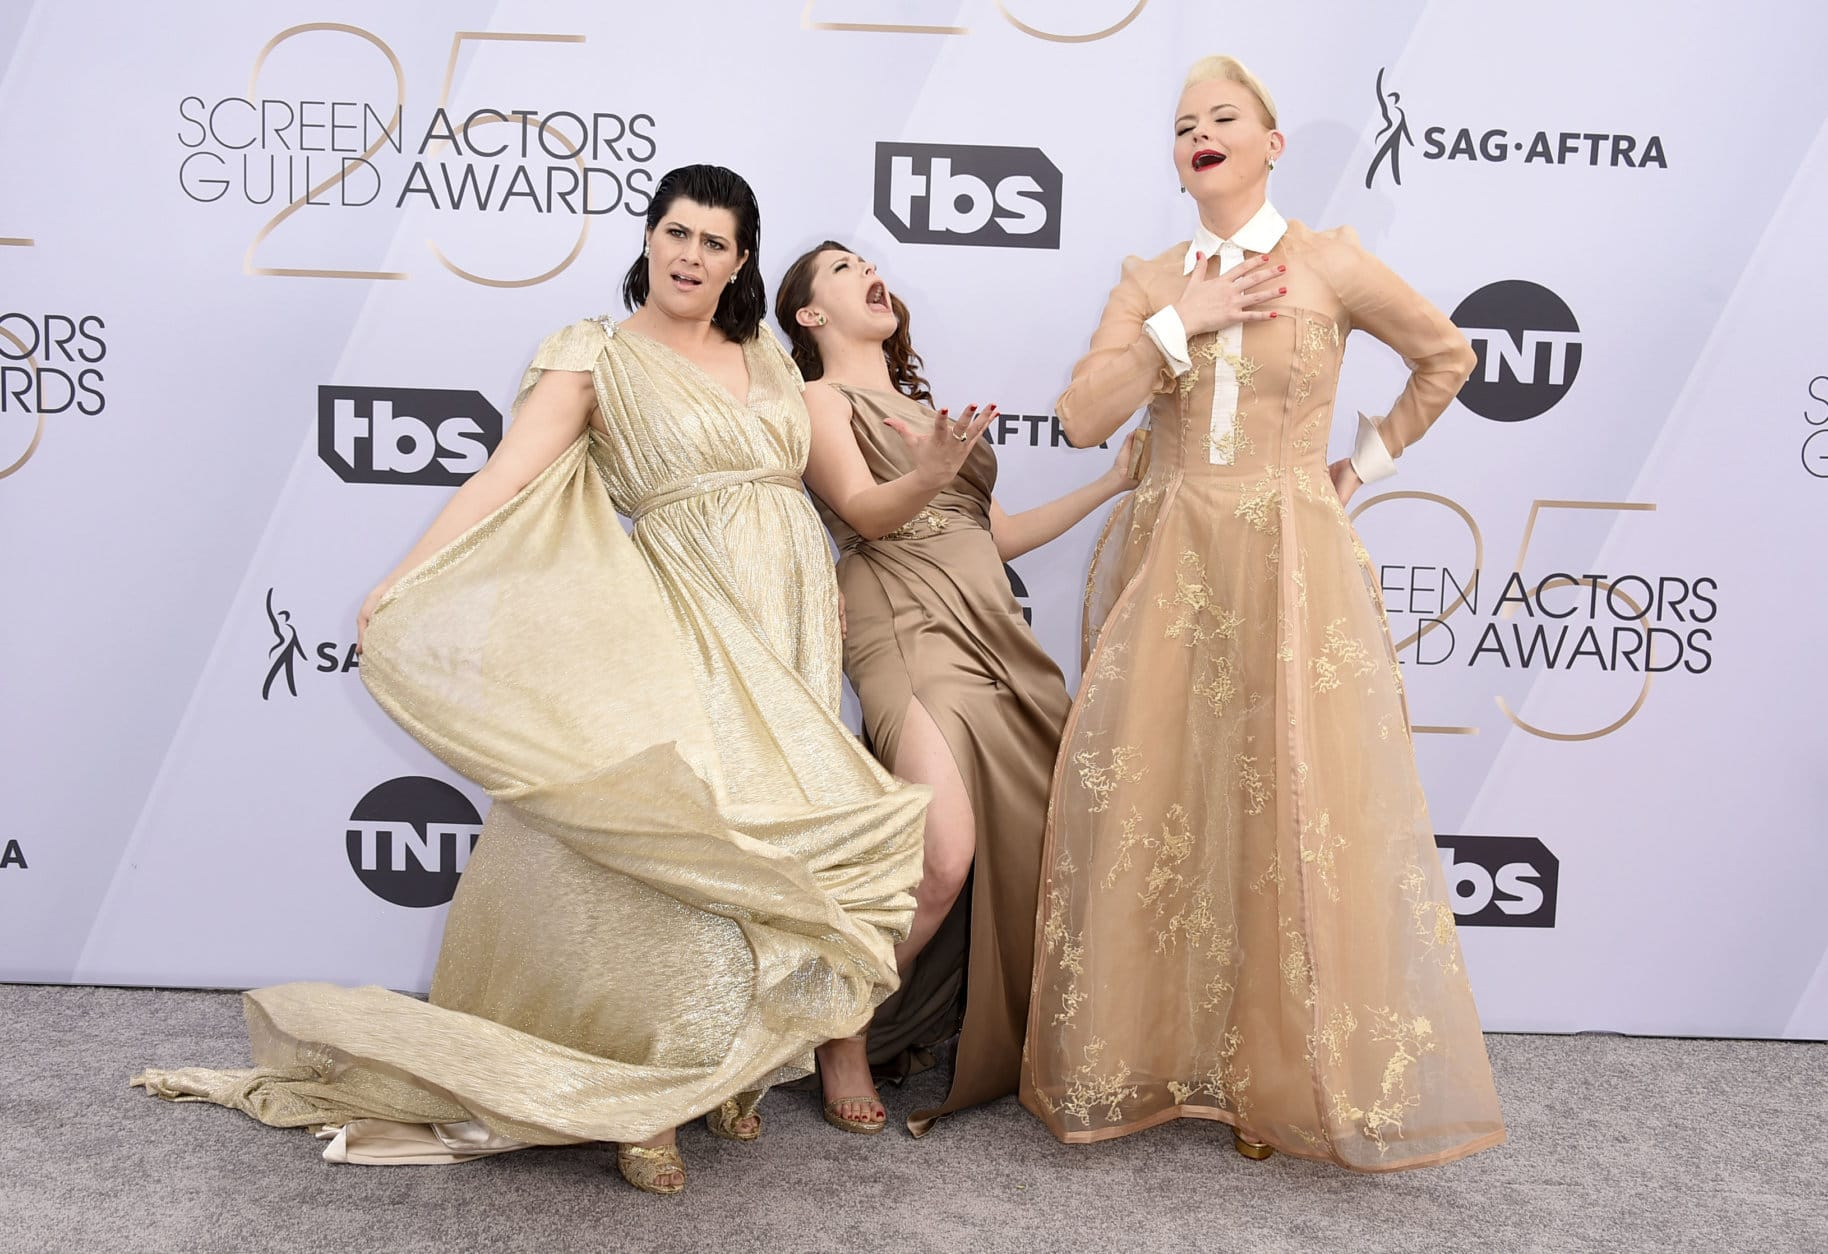 Rebekka Johnson, from left, Rachel Bloom, and Kimmy Gatewood arrive at the 25th annual Screen Actors Guild Awards at the Shrine Auditorium & Expo Hall on Sunday, Jan. 27, 2019, in Los Angeles. (Photo by Jordan Strauss/Invision/AP)